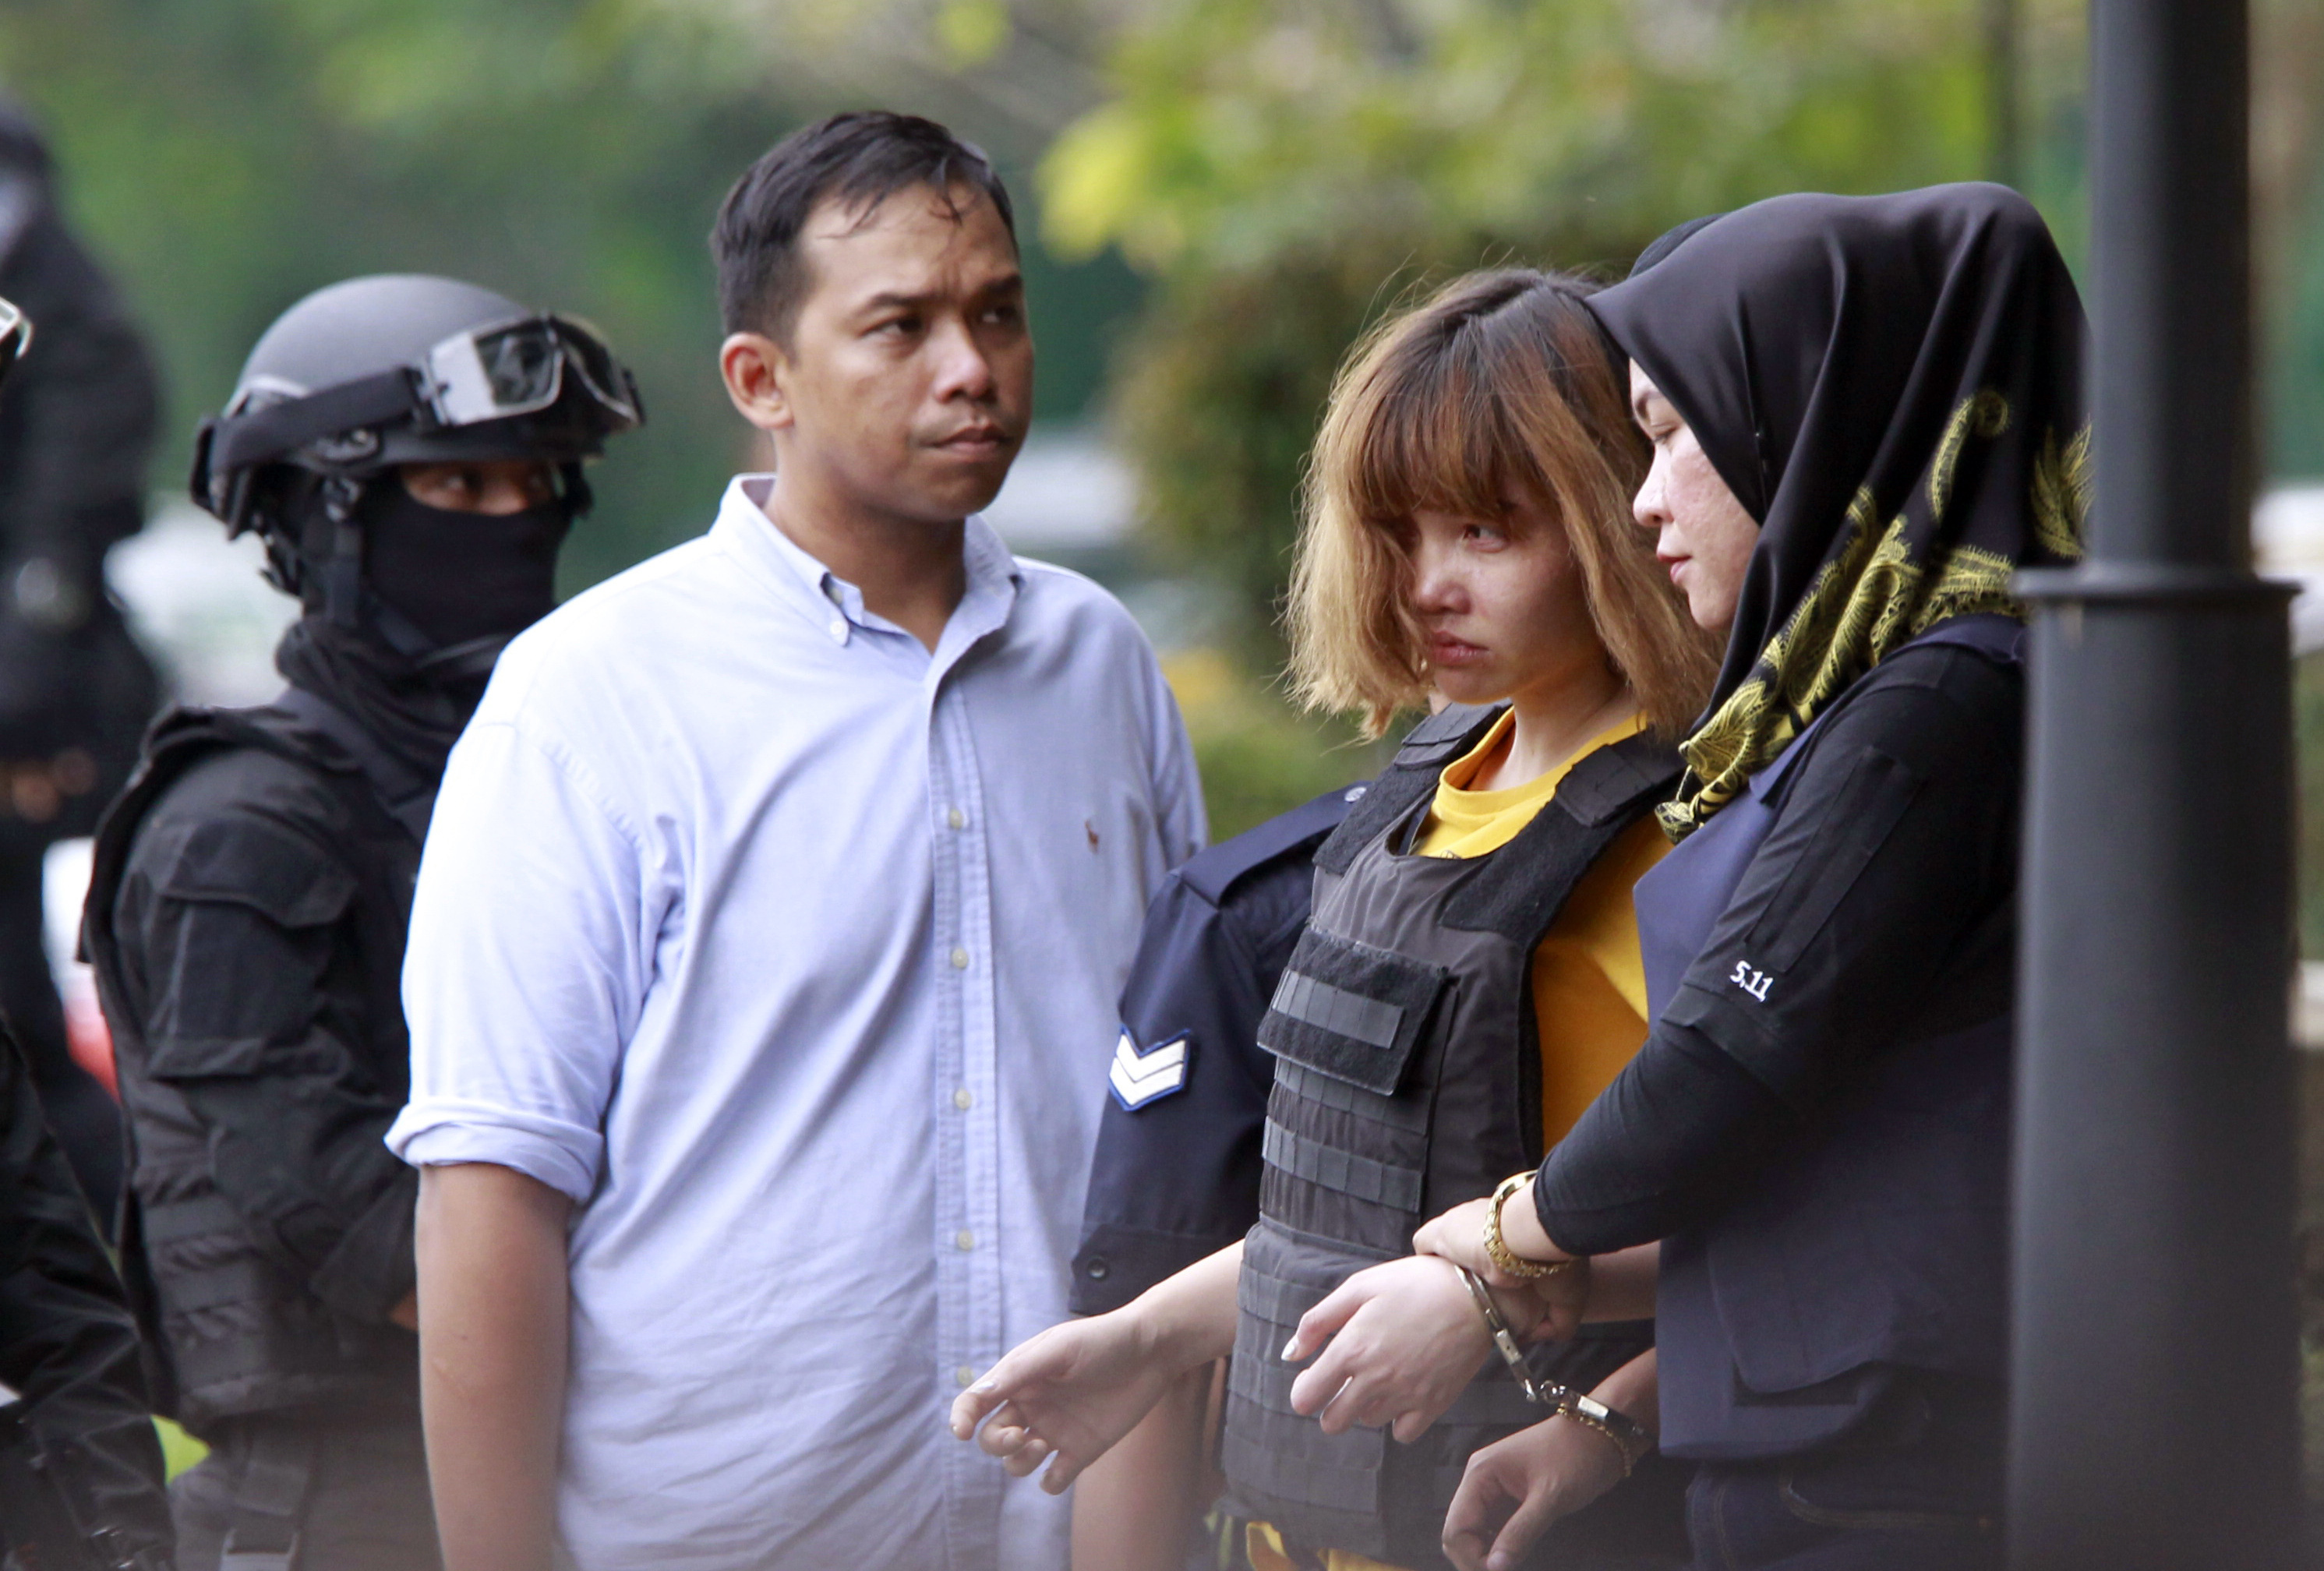 Vietnamese suspect Doan Thi Huong, second from right, in the ongoing assassination investigation, is escorted by police officers out from Sepang court in Sepang, Malaysia on March 1, 2017. (AP Photo/Daniel Chan)